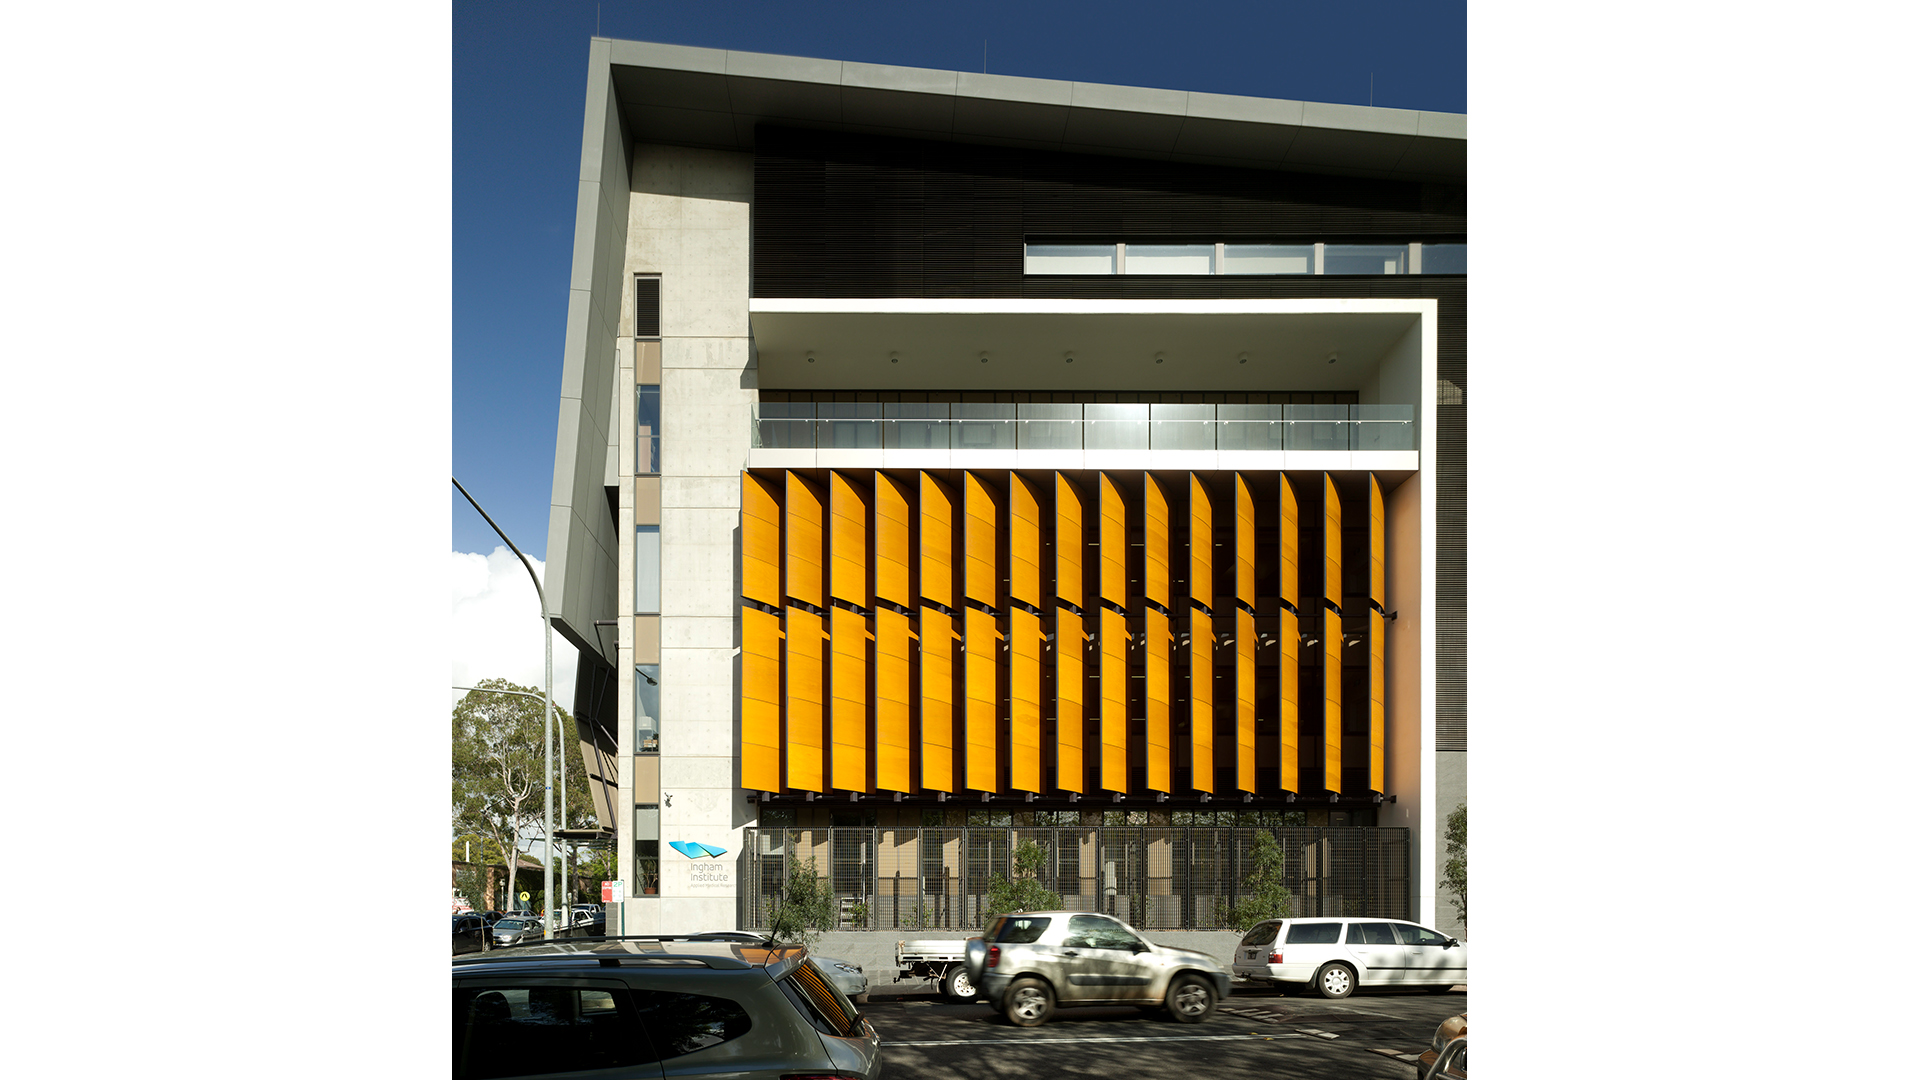 Ingham Health Research Institute